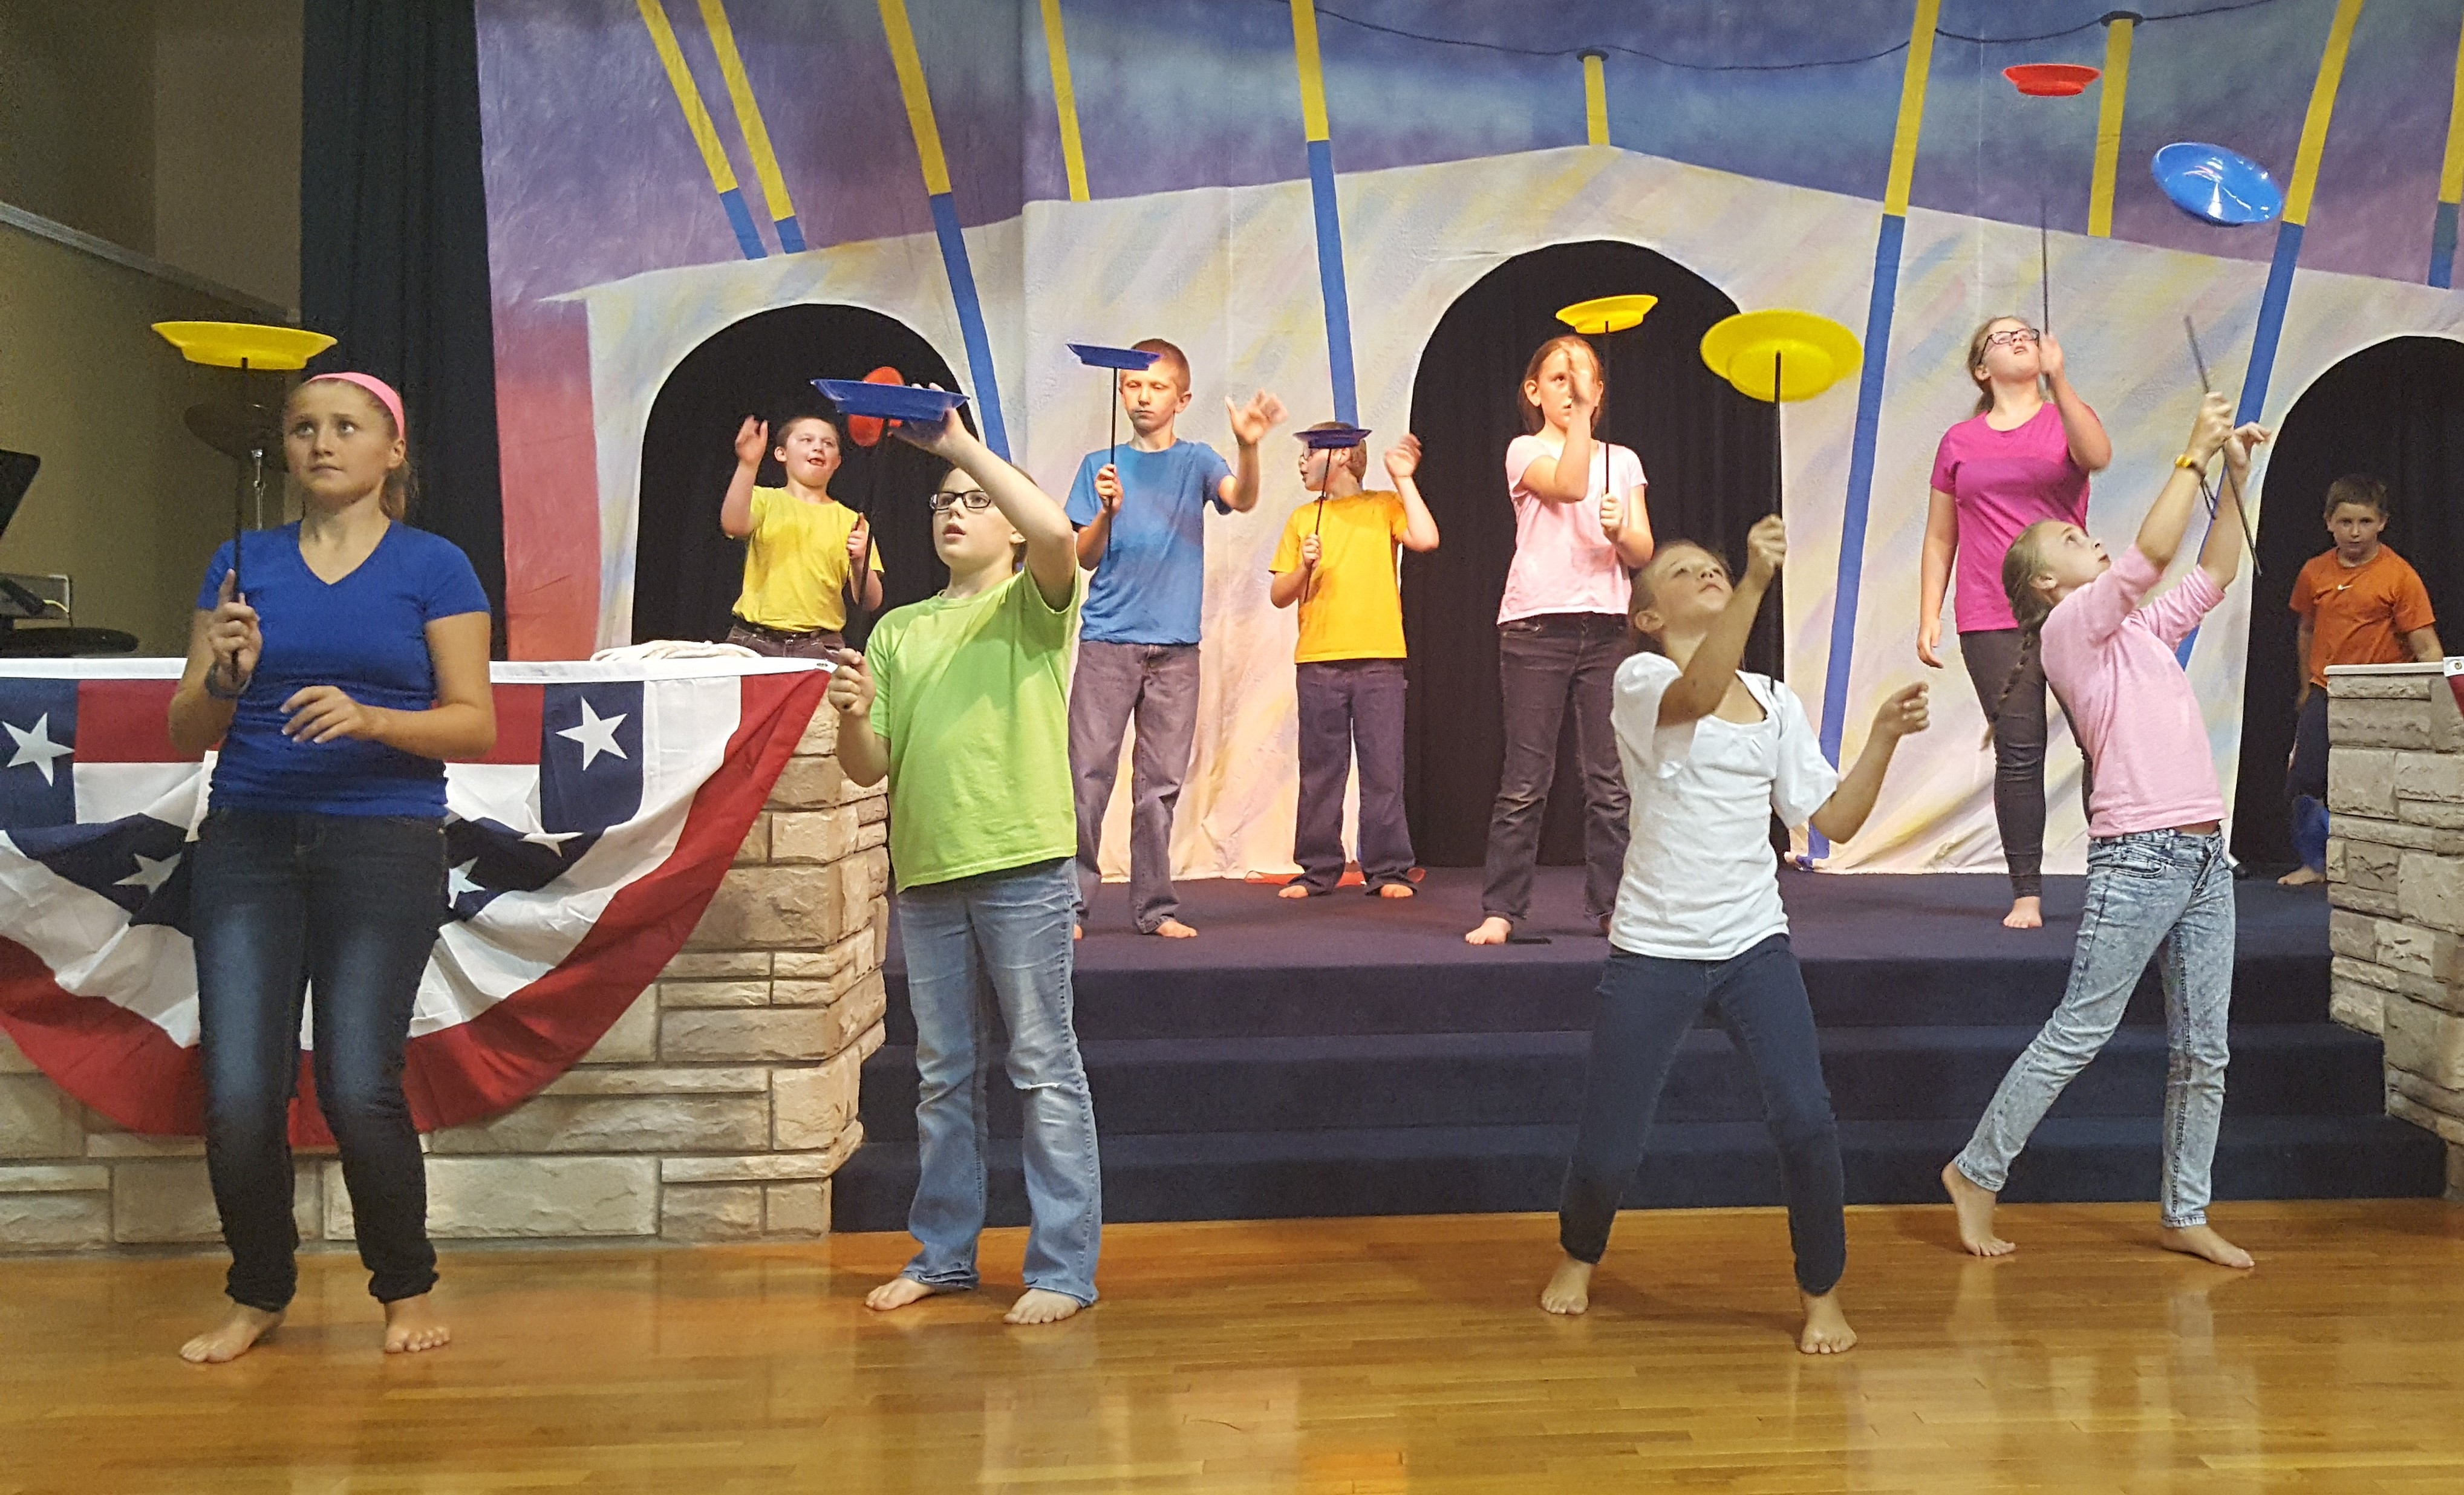 Children Plate Spinning at Circus VBS